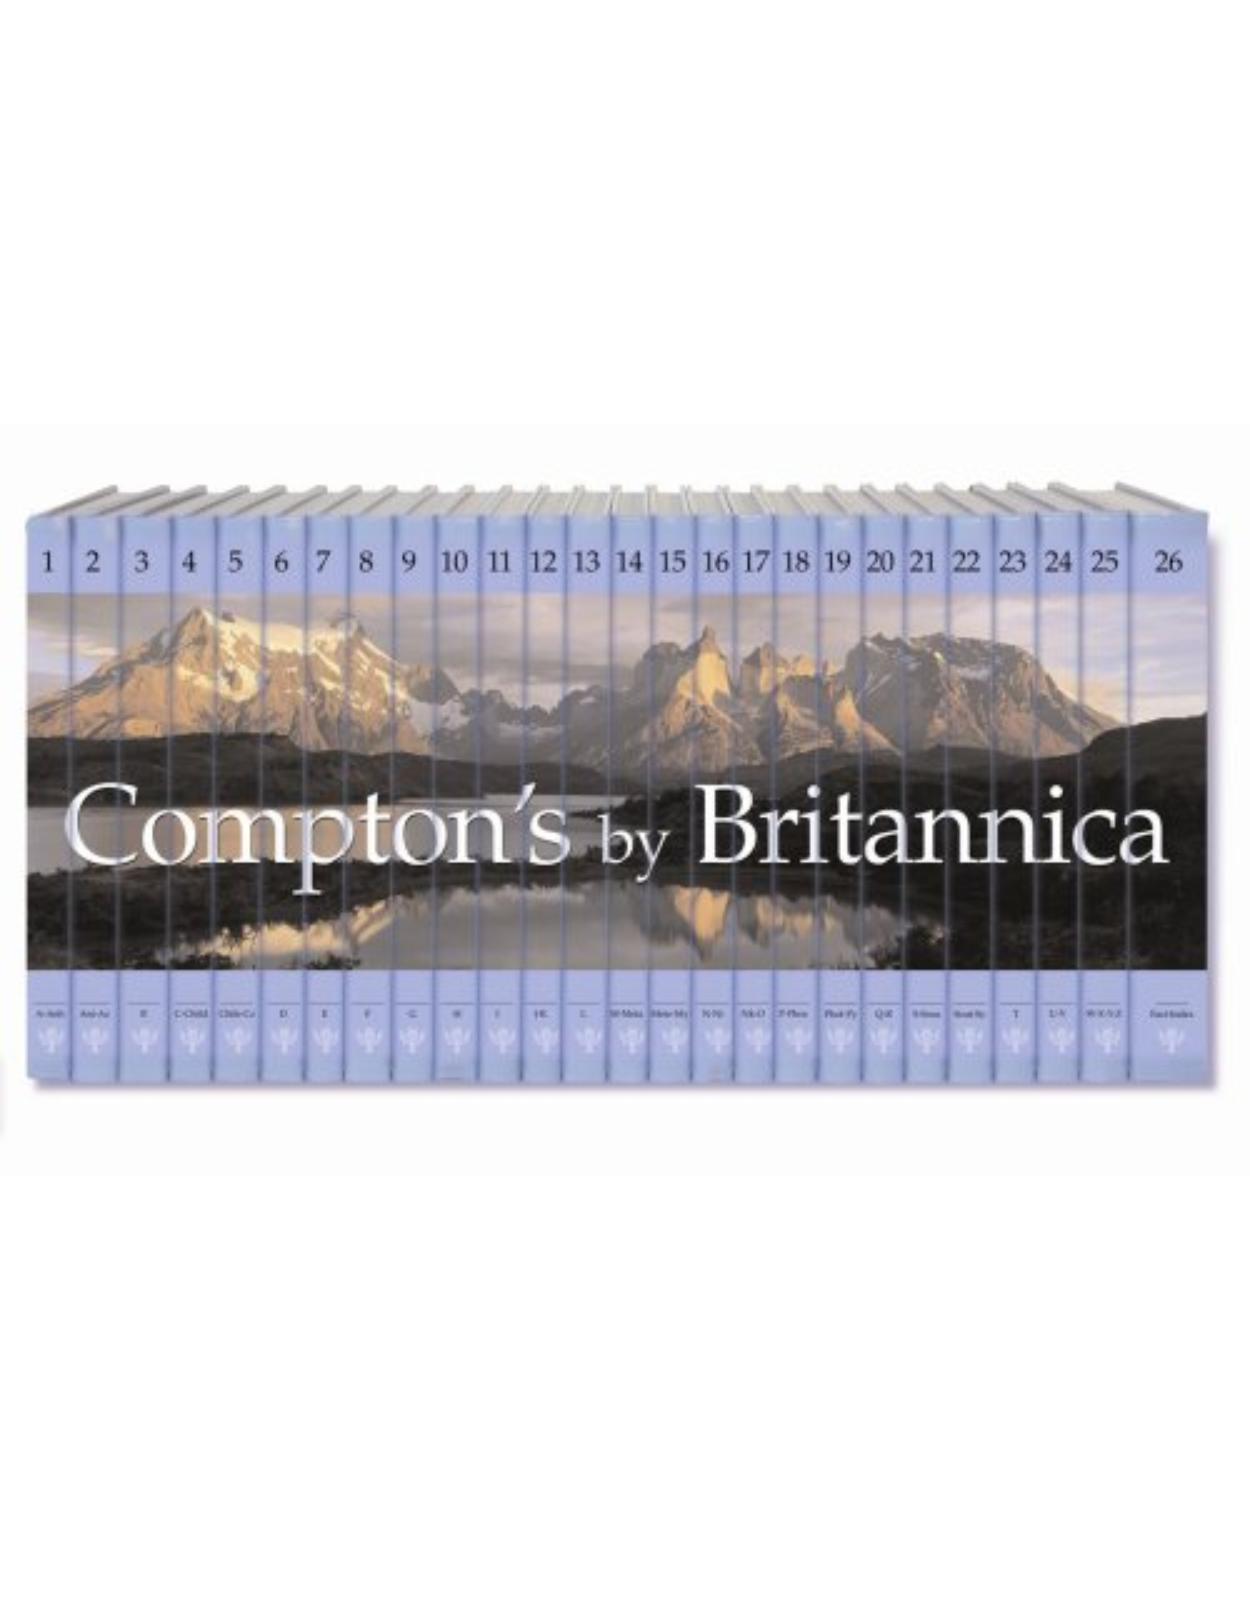 Compton's By Britannica 26 vol/set